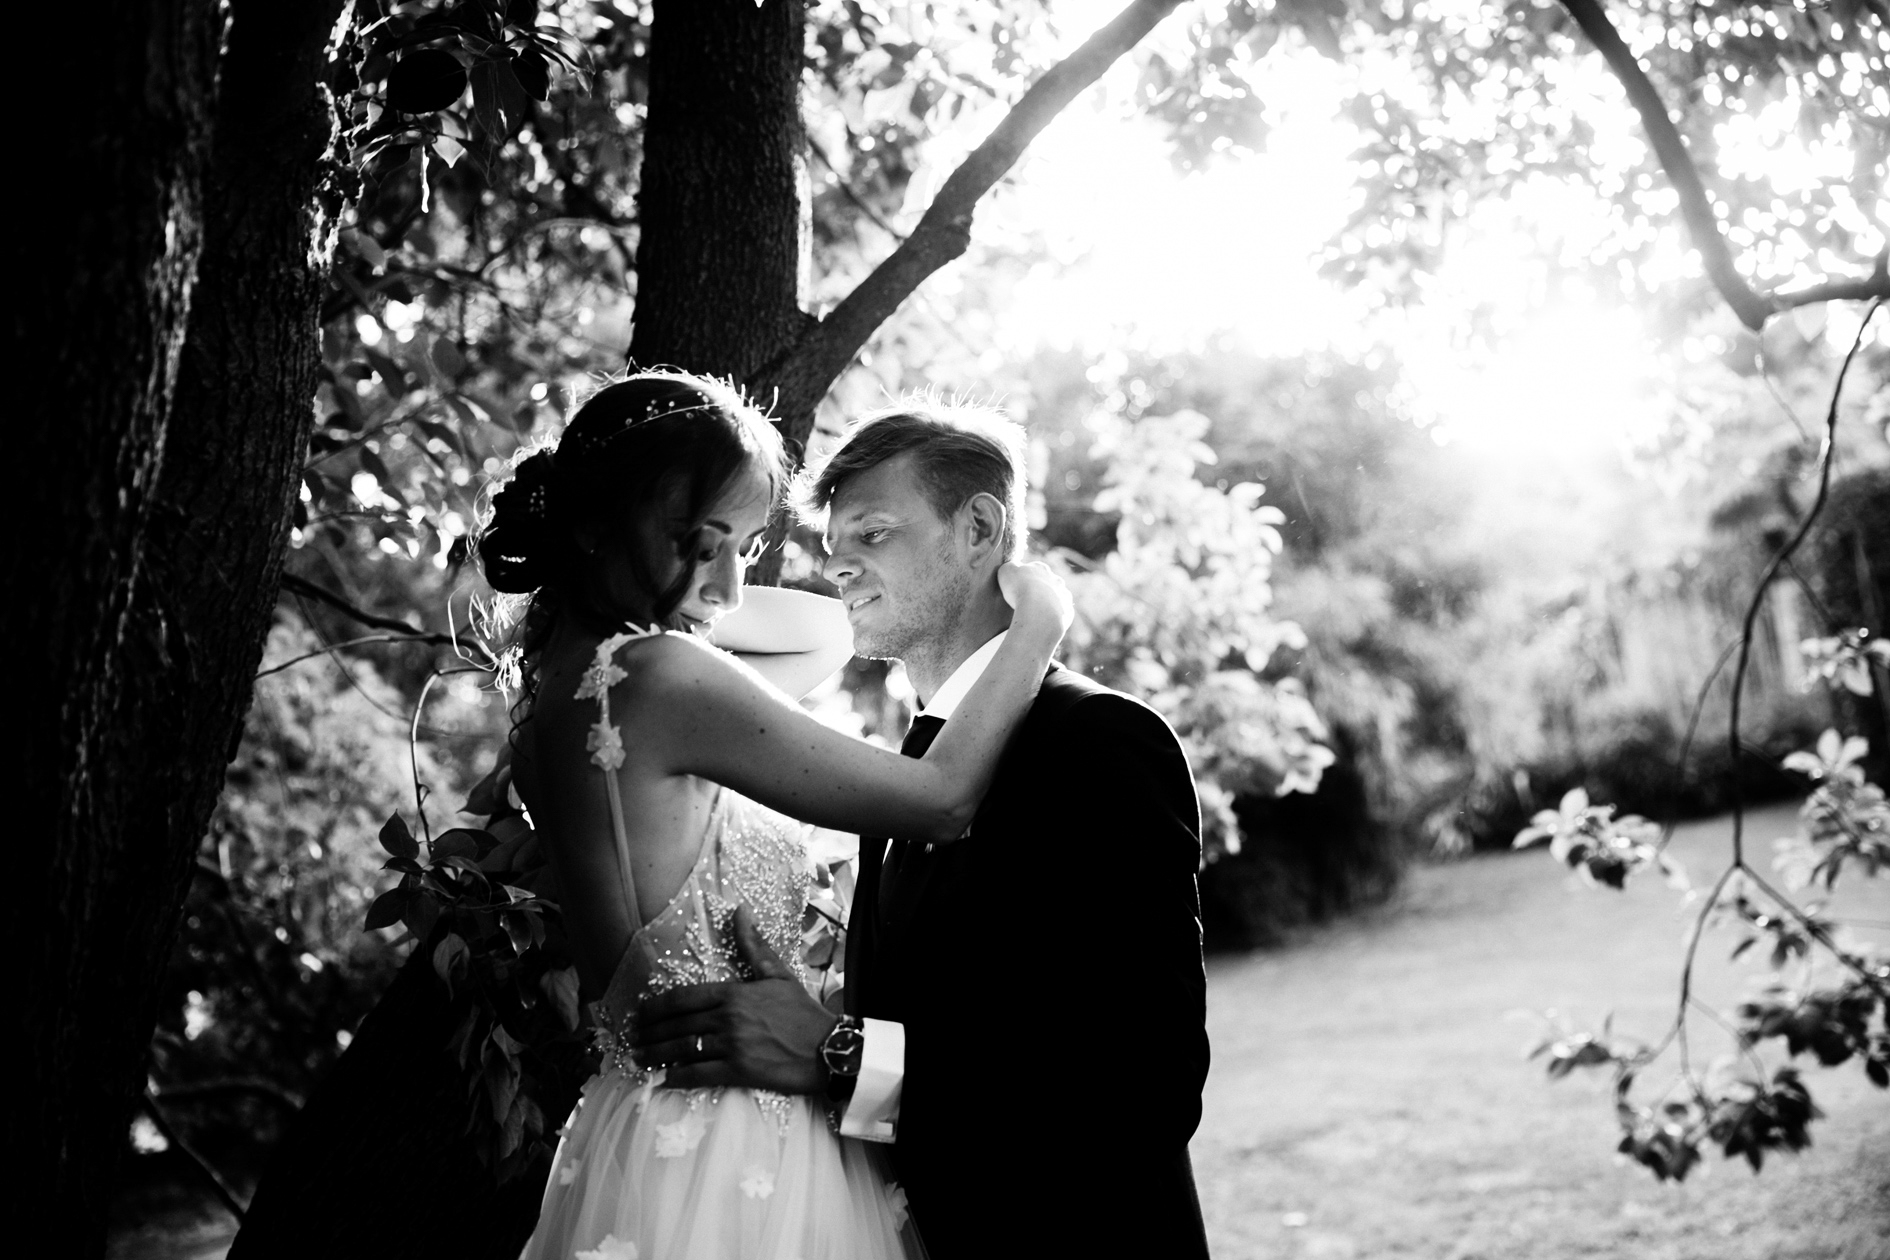 wedding realwedding americanwedding weddingphotography destinationwedding